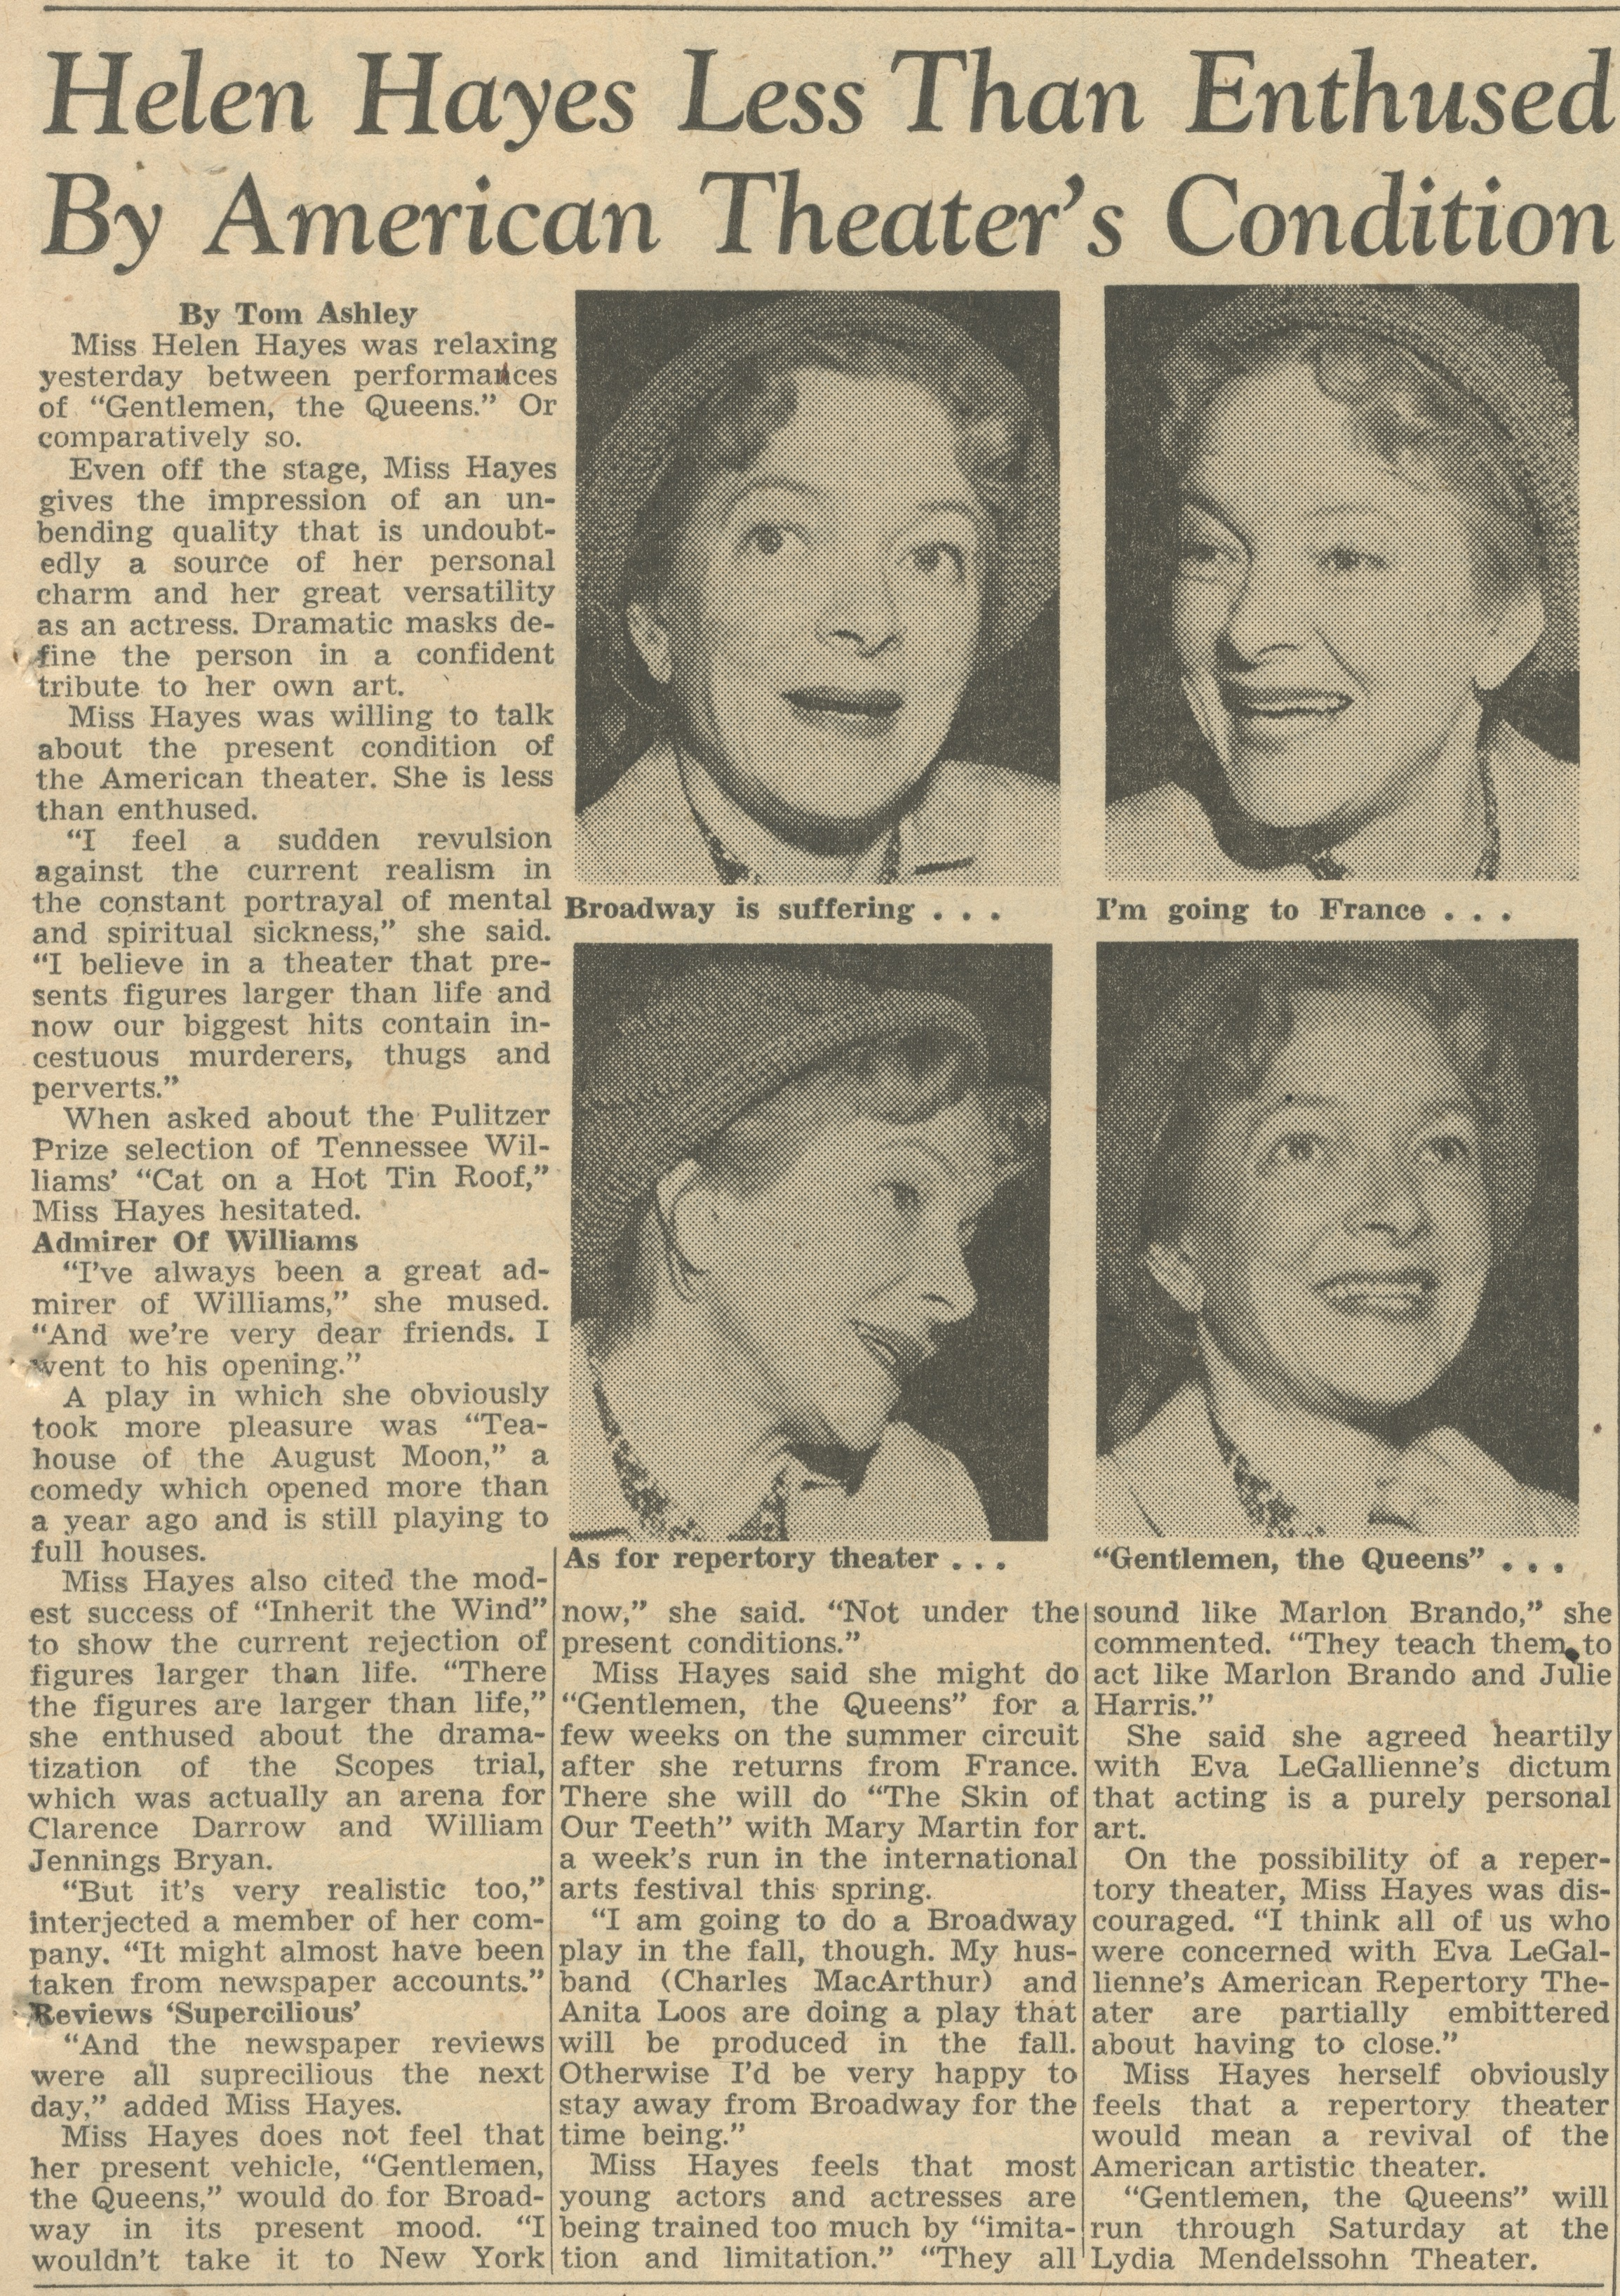 Helen Hayes Less Than Enthused By American Theater's Condition image